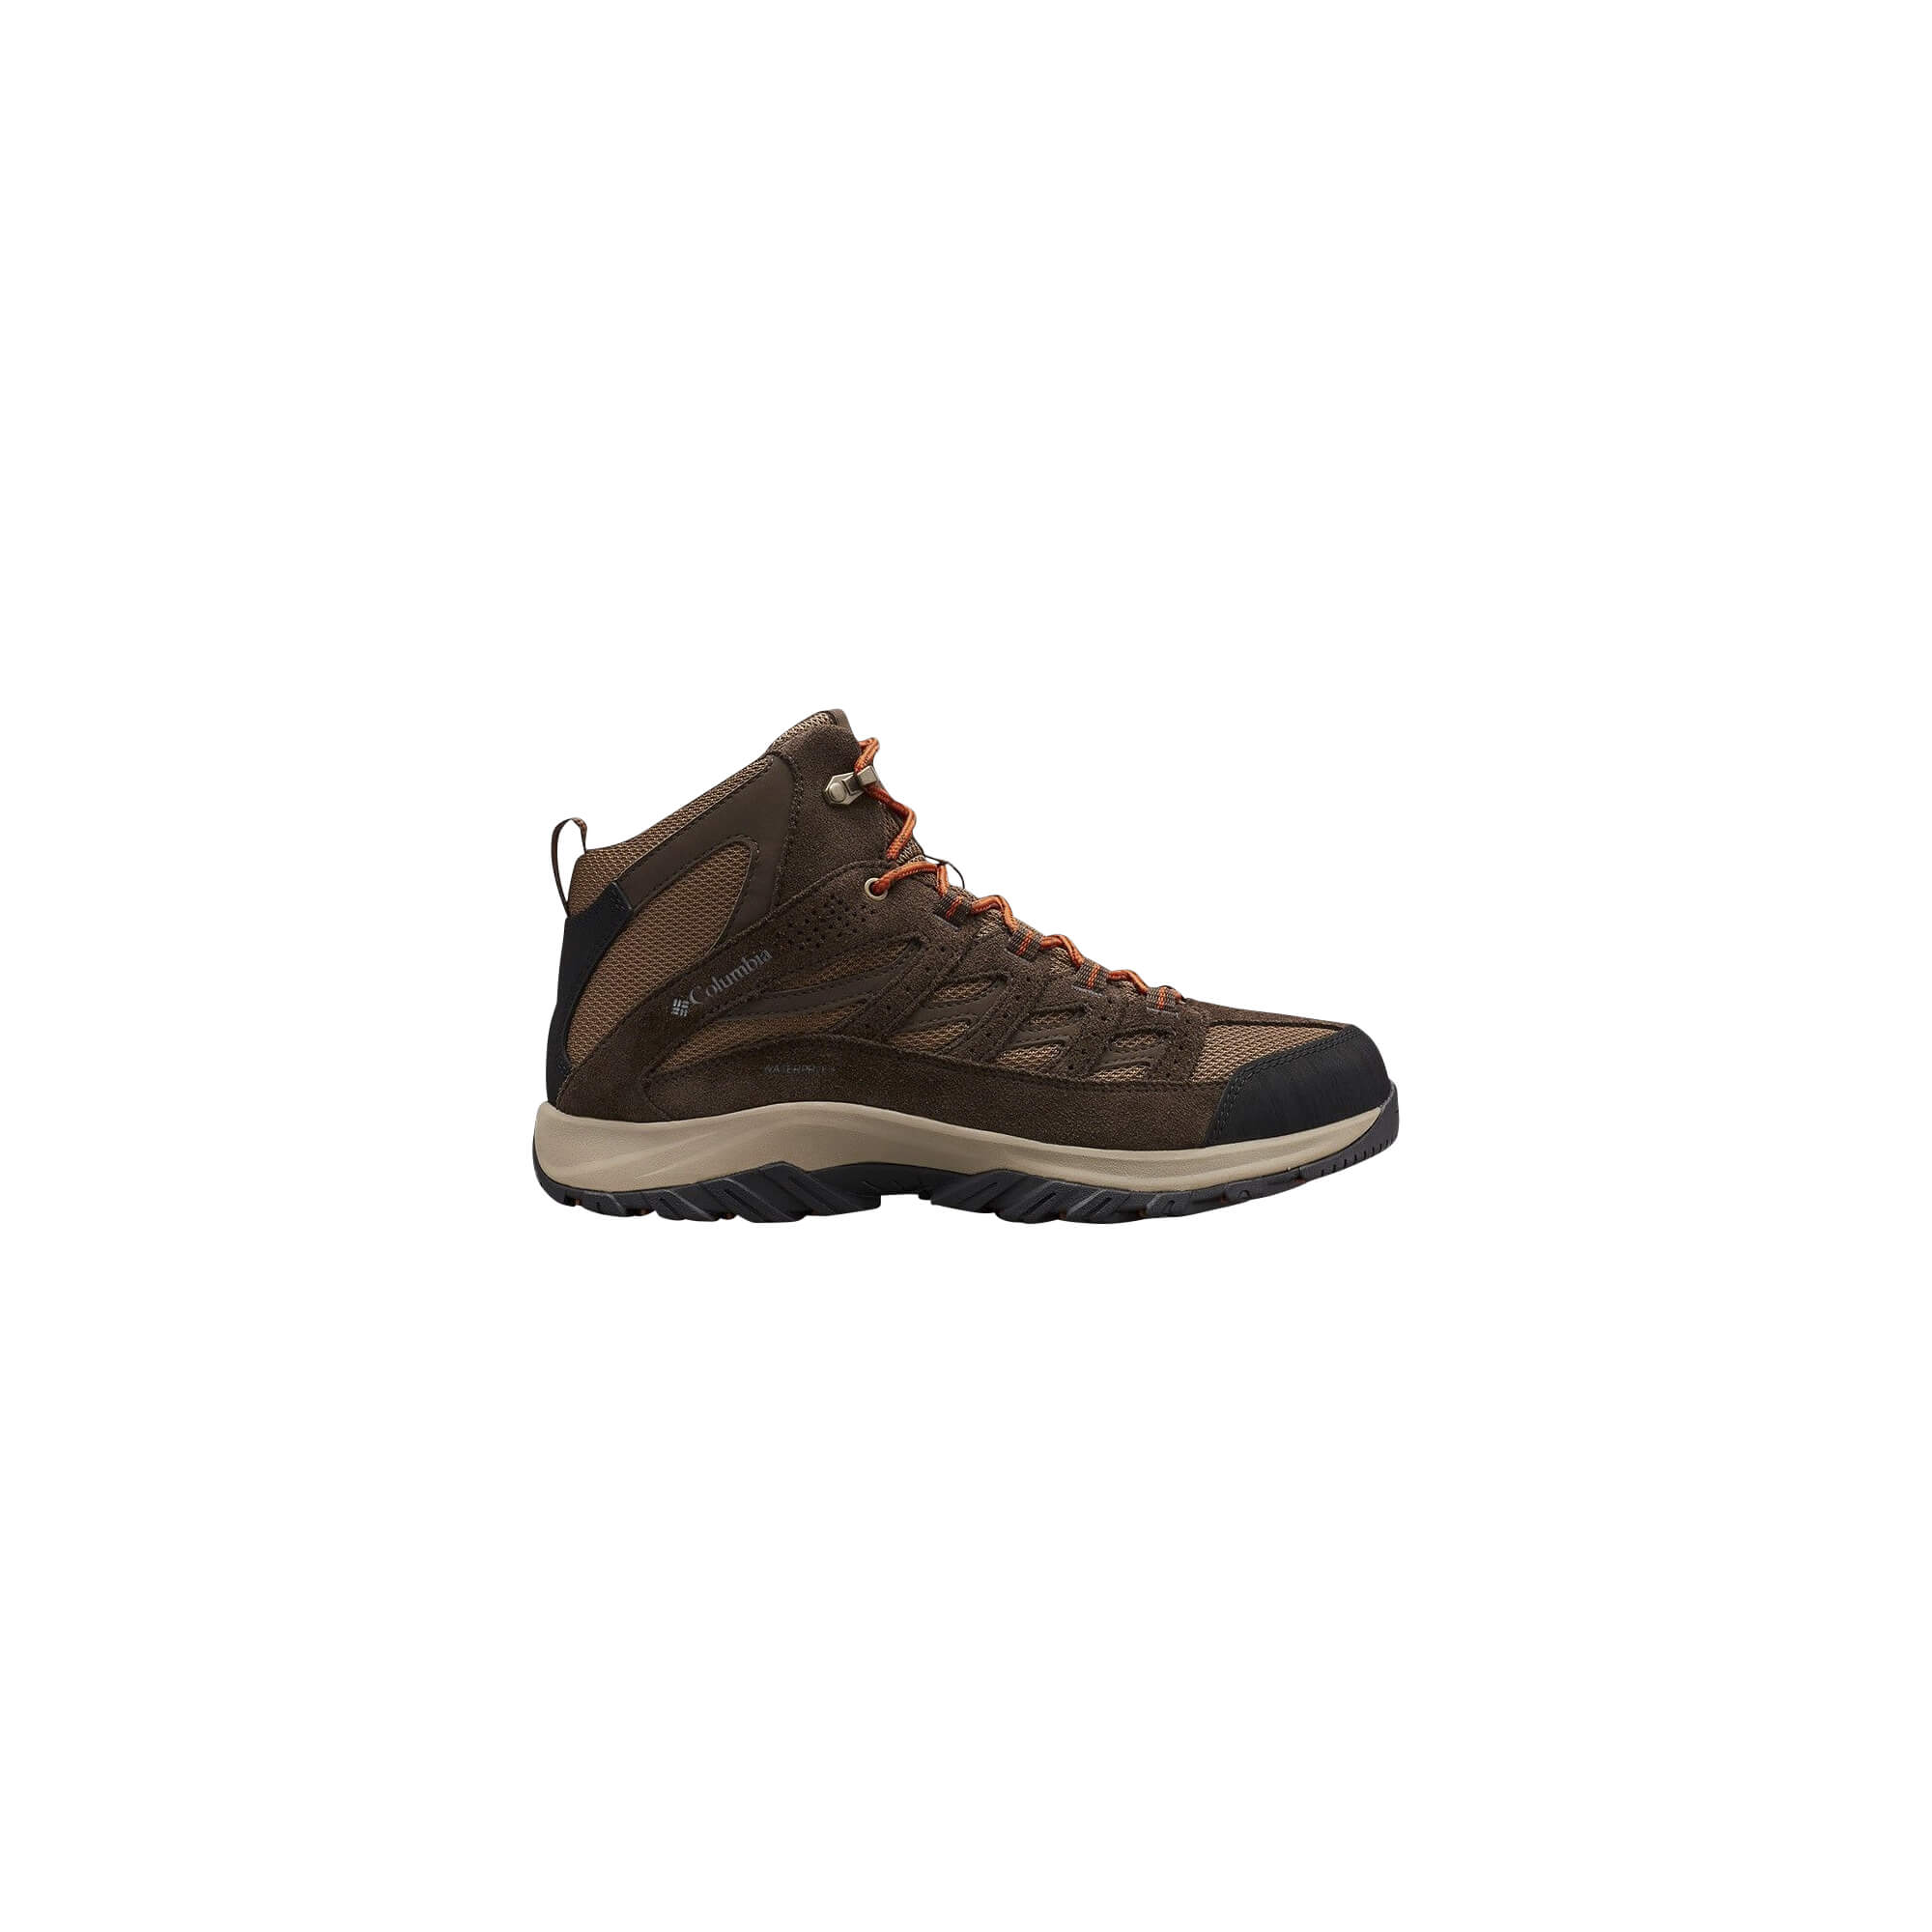 Crestwood MID Waterproof imagine produs